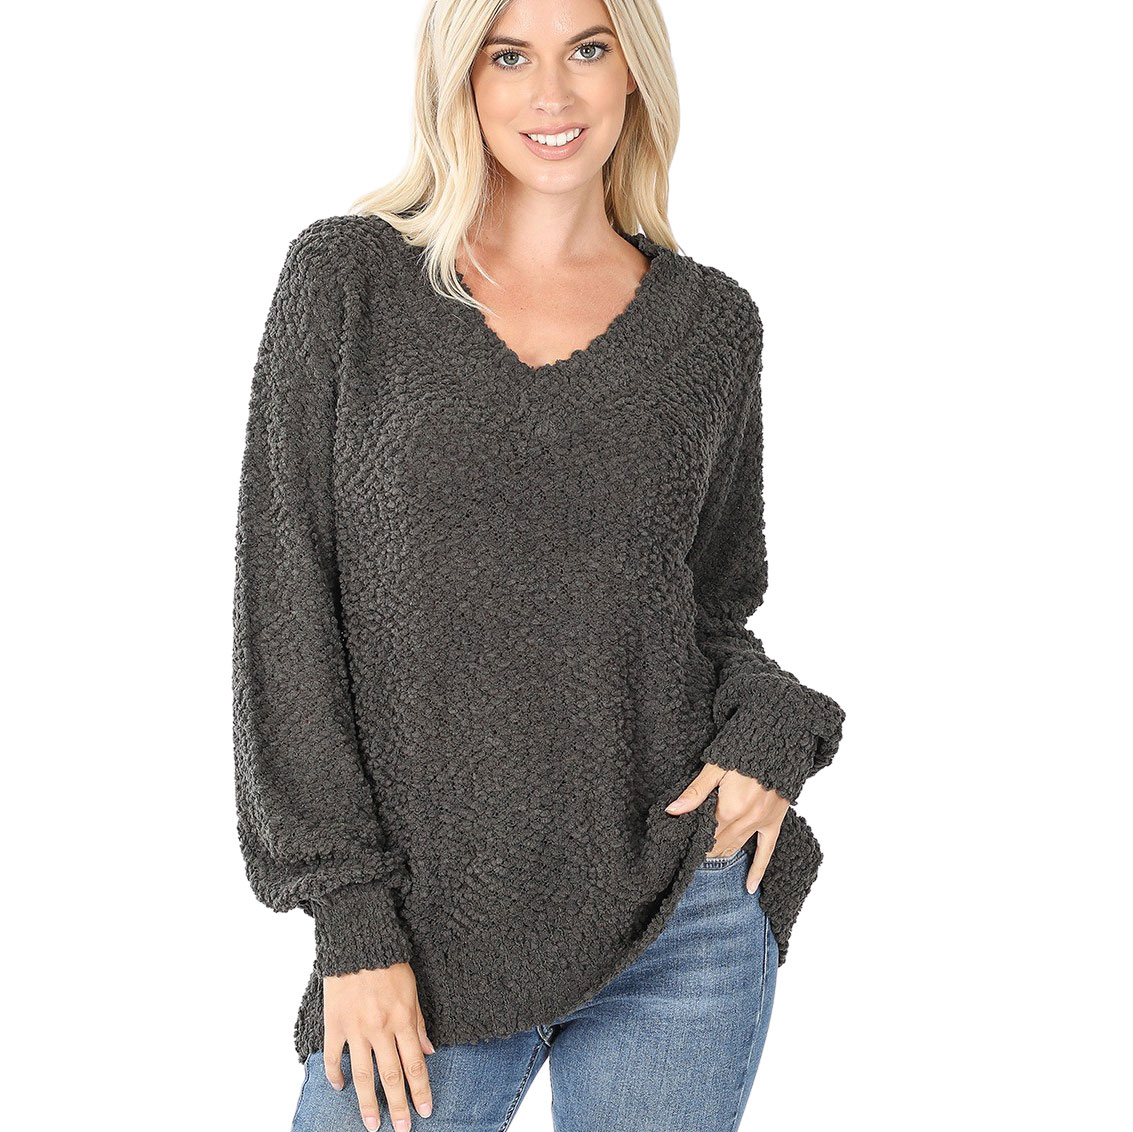 Sweater - Popcorn Balloon Sleeve V-Neck 2736 - Ash Grey Popcorn Balloon Sleeve V-Neck 2736